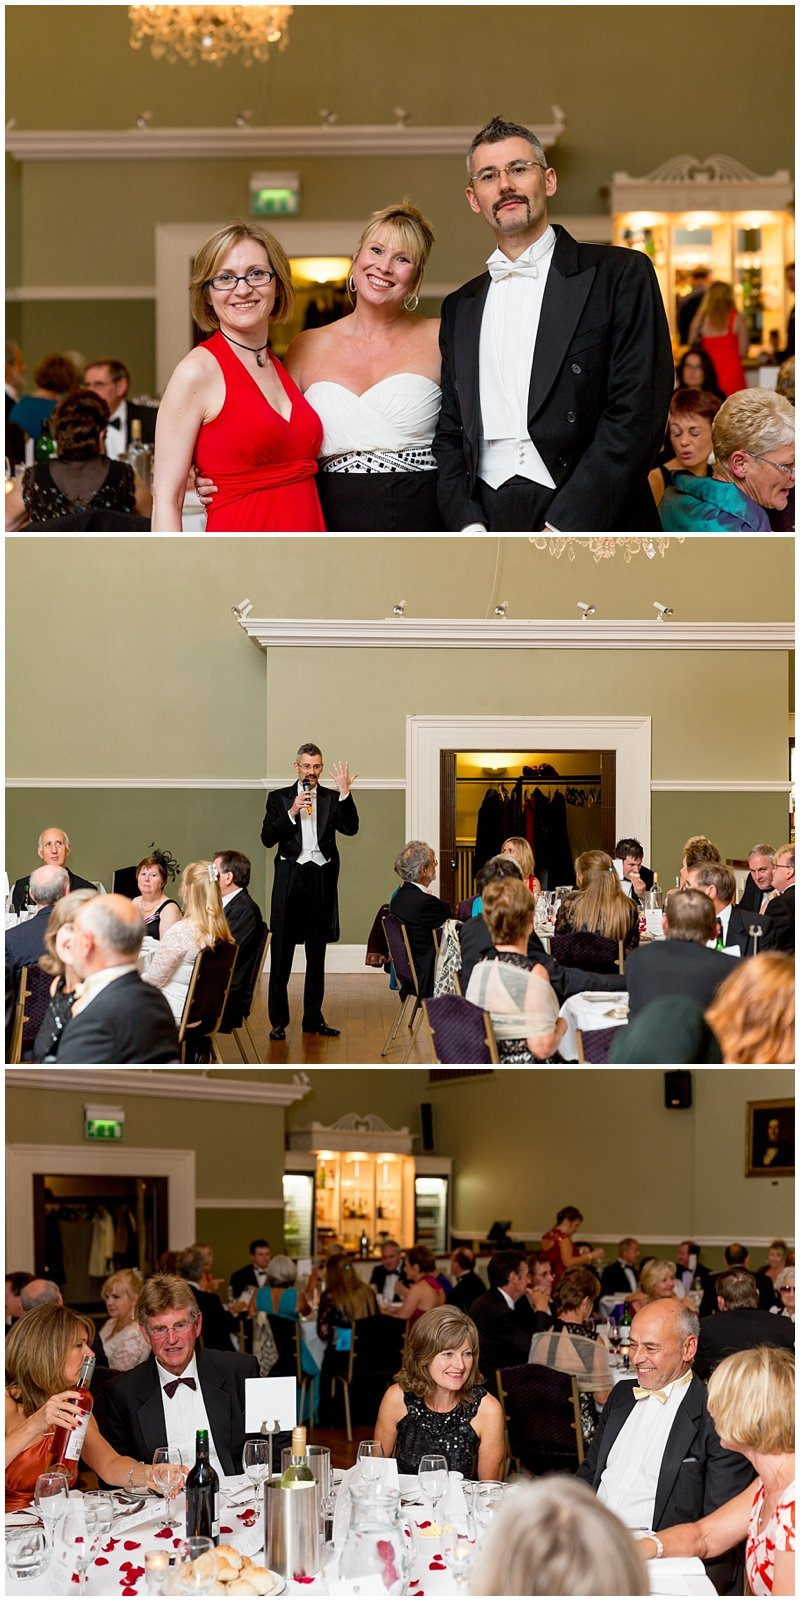 GRAND BALL AND DINNER WITH THE IMPERIAL VIENNA ORCHESTRA - THE ASSEMBLY HOUSE NORWICH - NORFOLK EVENT PHOTOGRAPHER 1